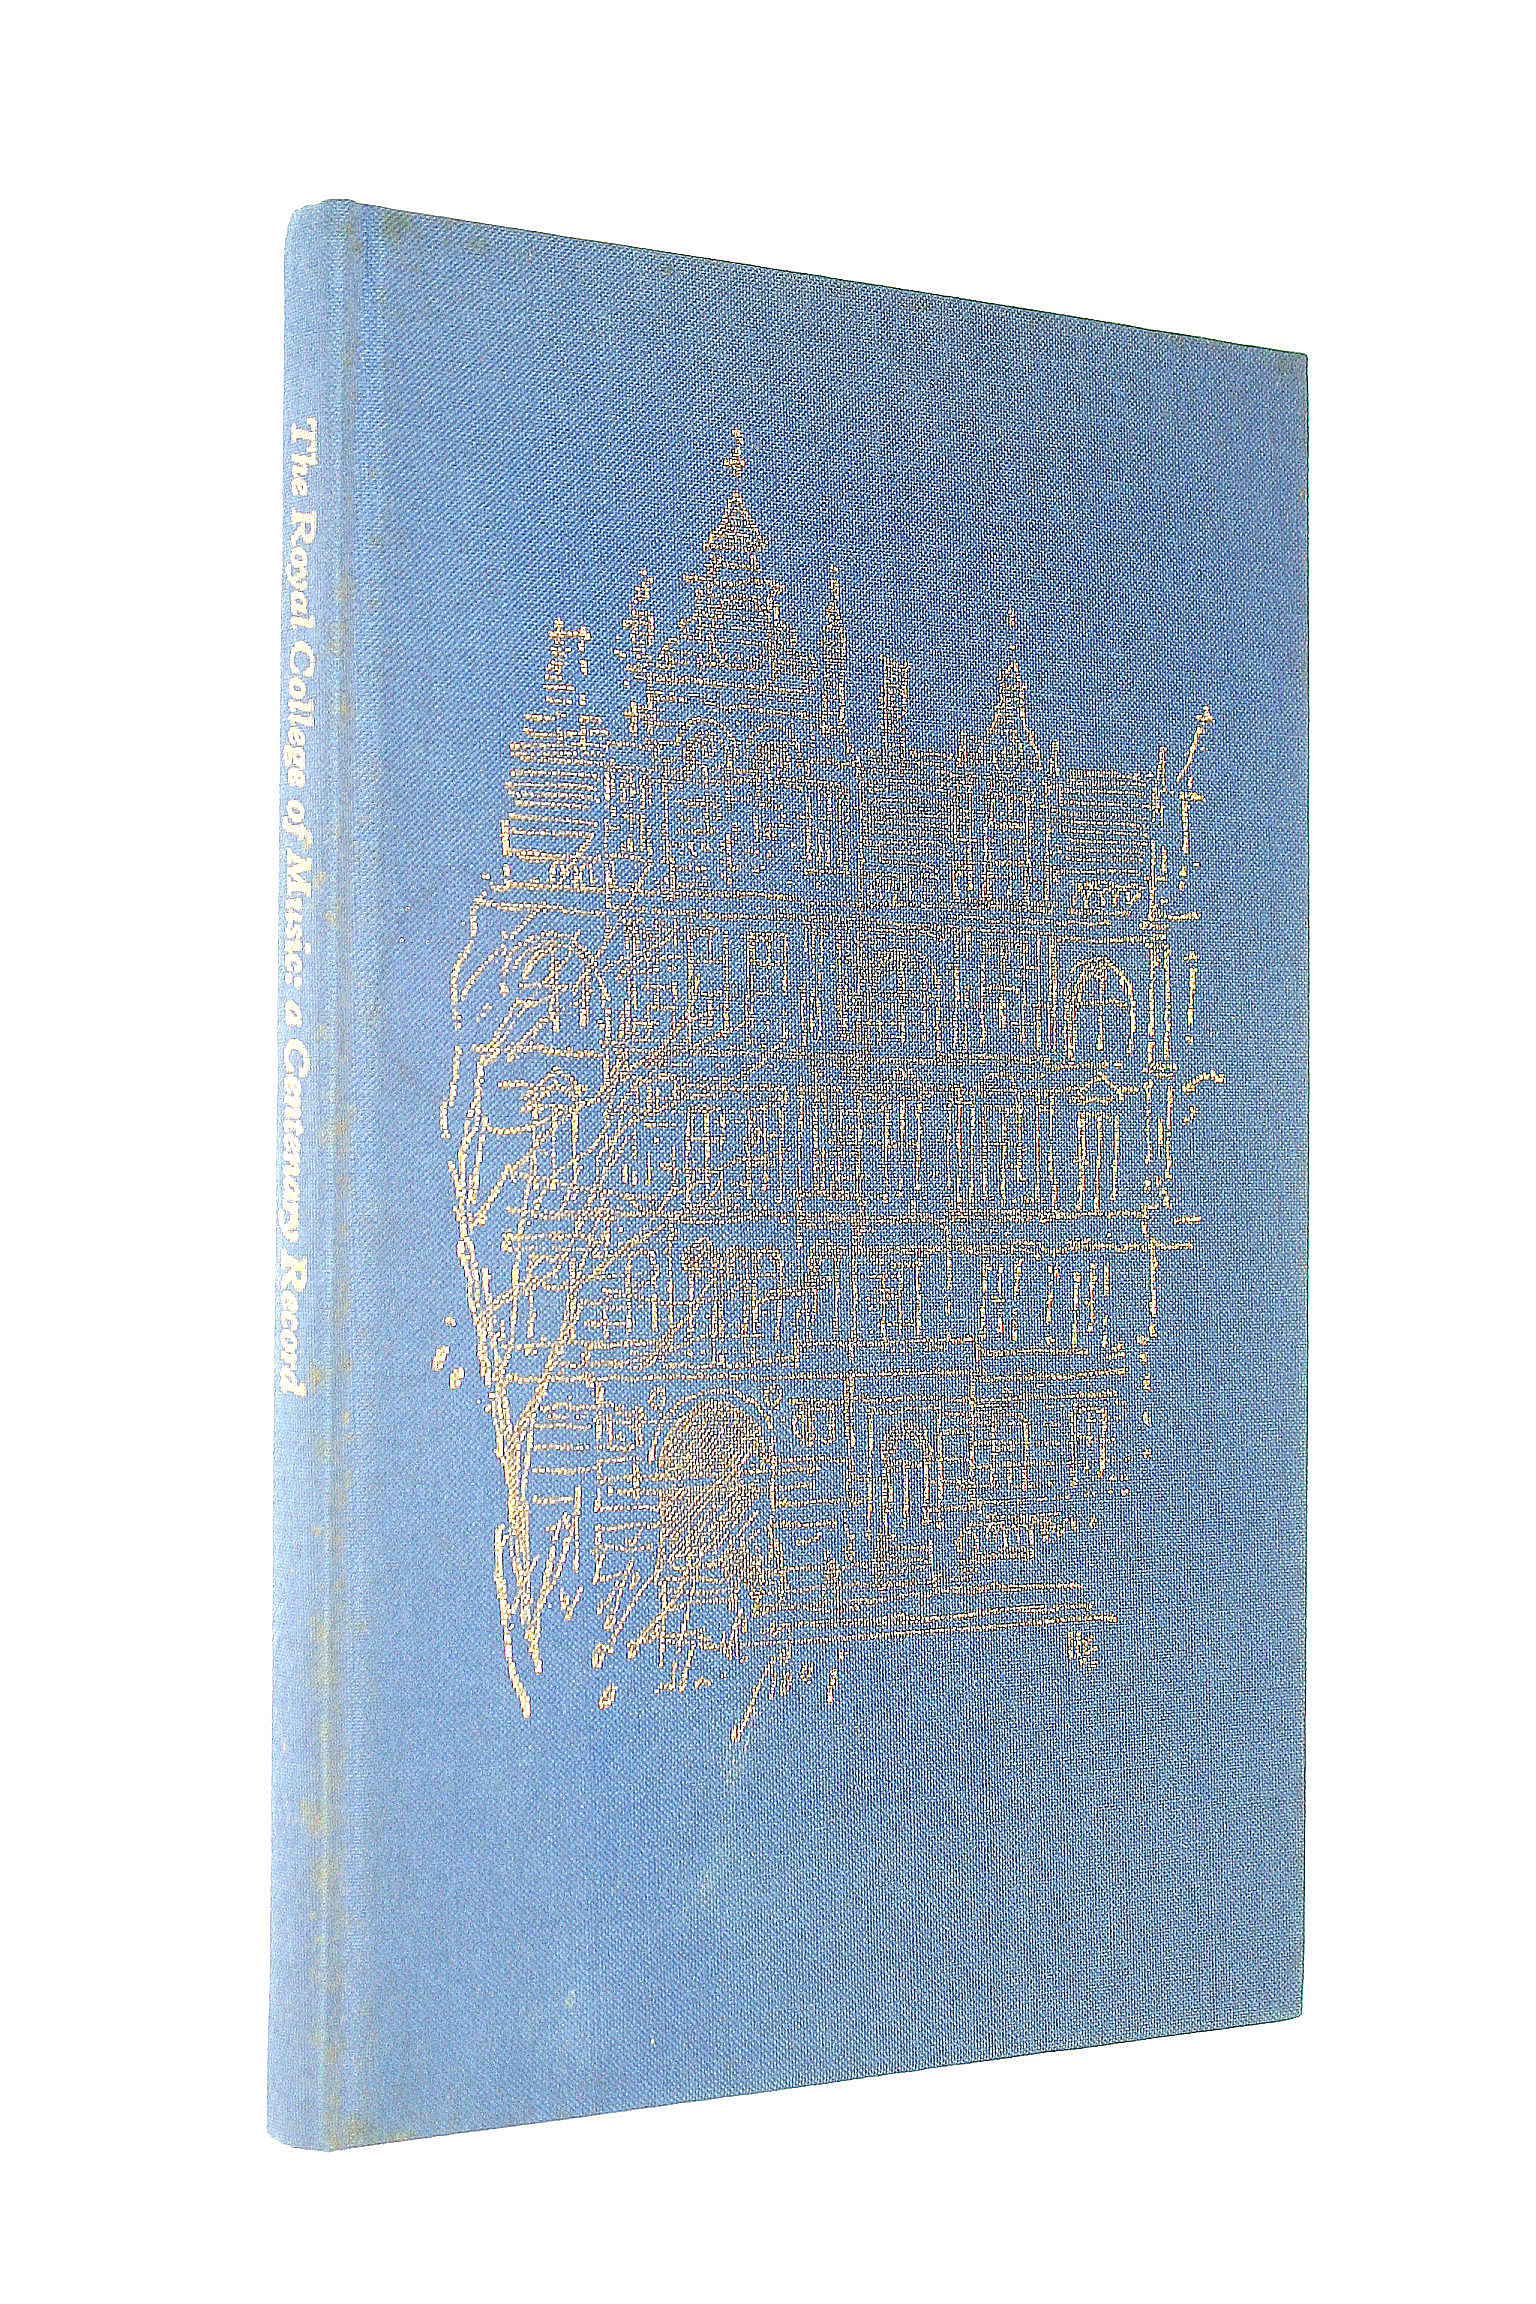 Image for The Royal College of Music: a Centenary record, 1883-1983